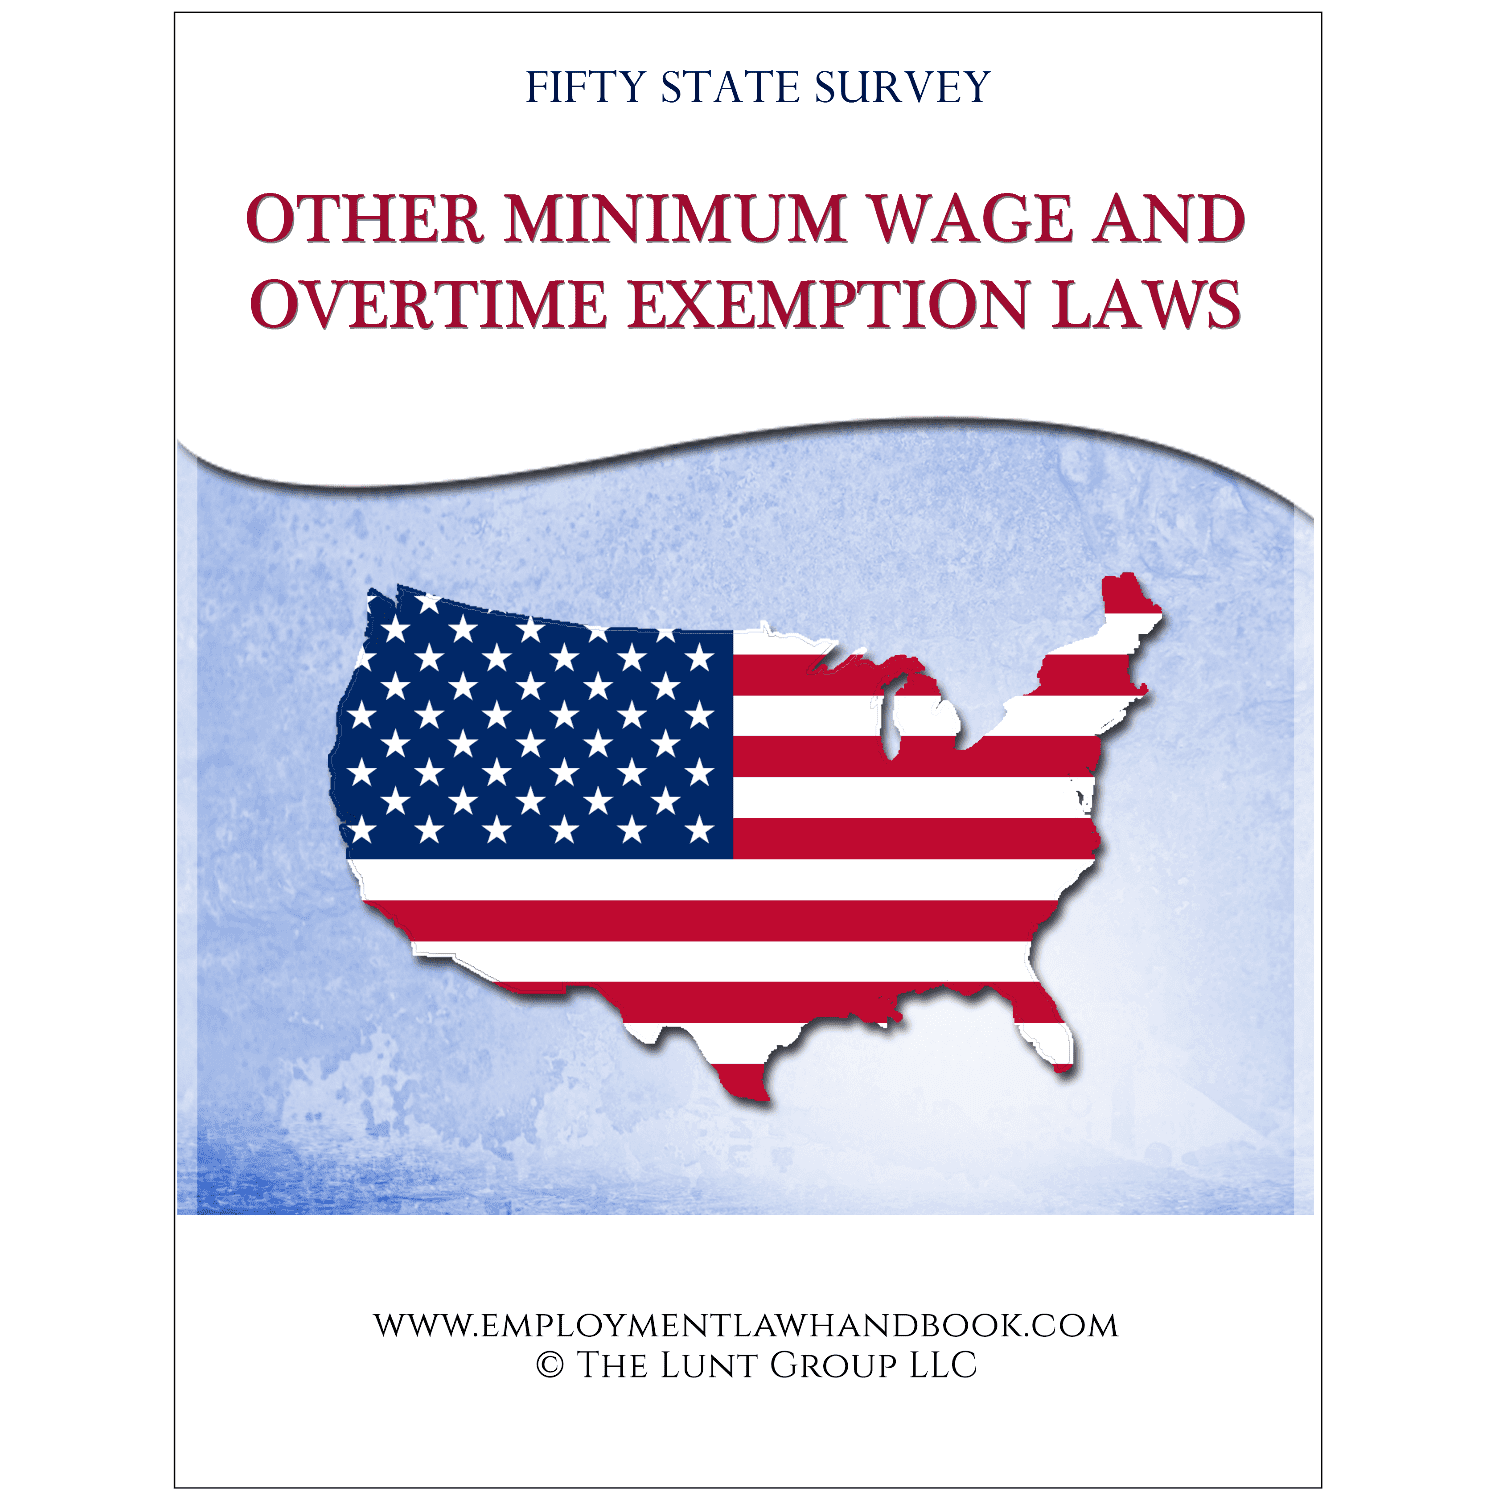 Other Minimum Wage and Overtime Exemption - Portrait_sq